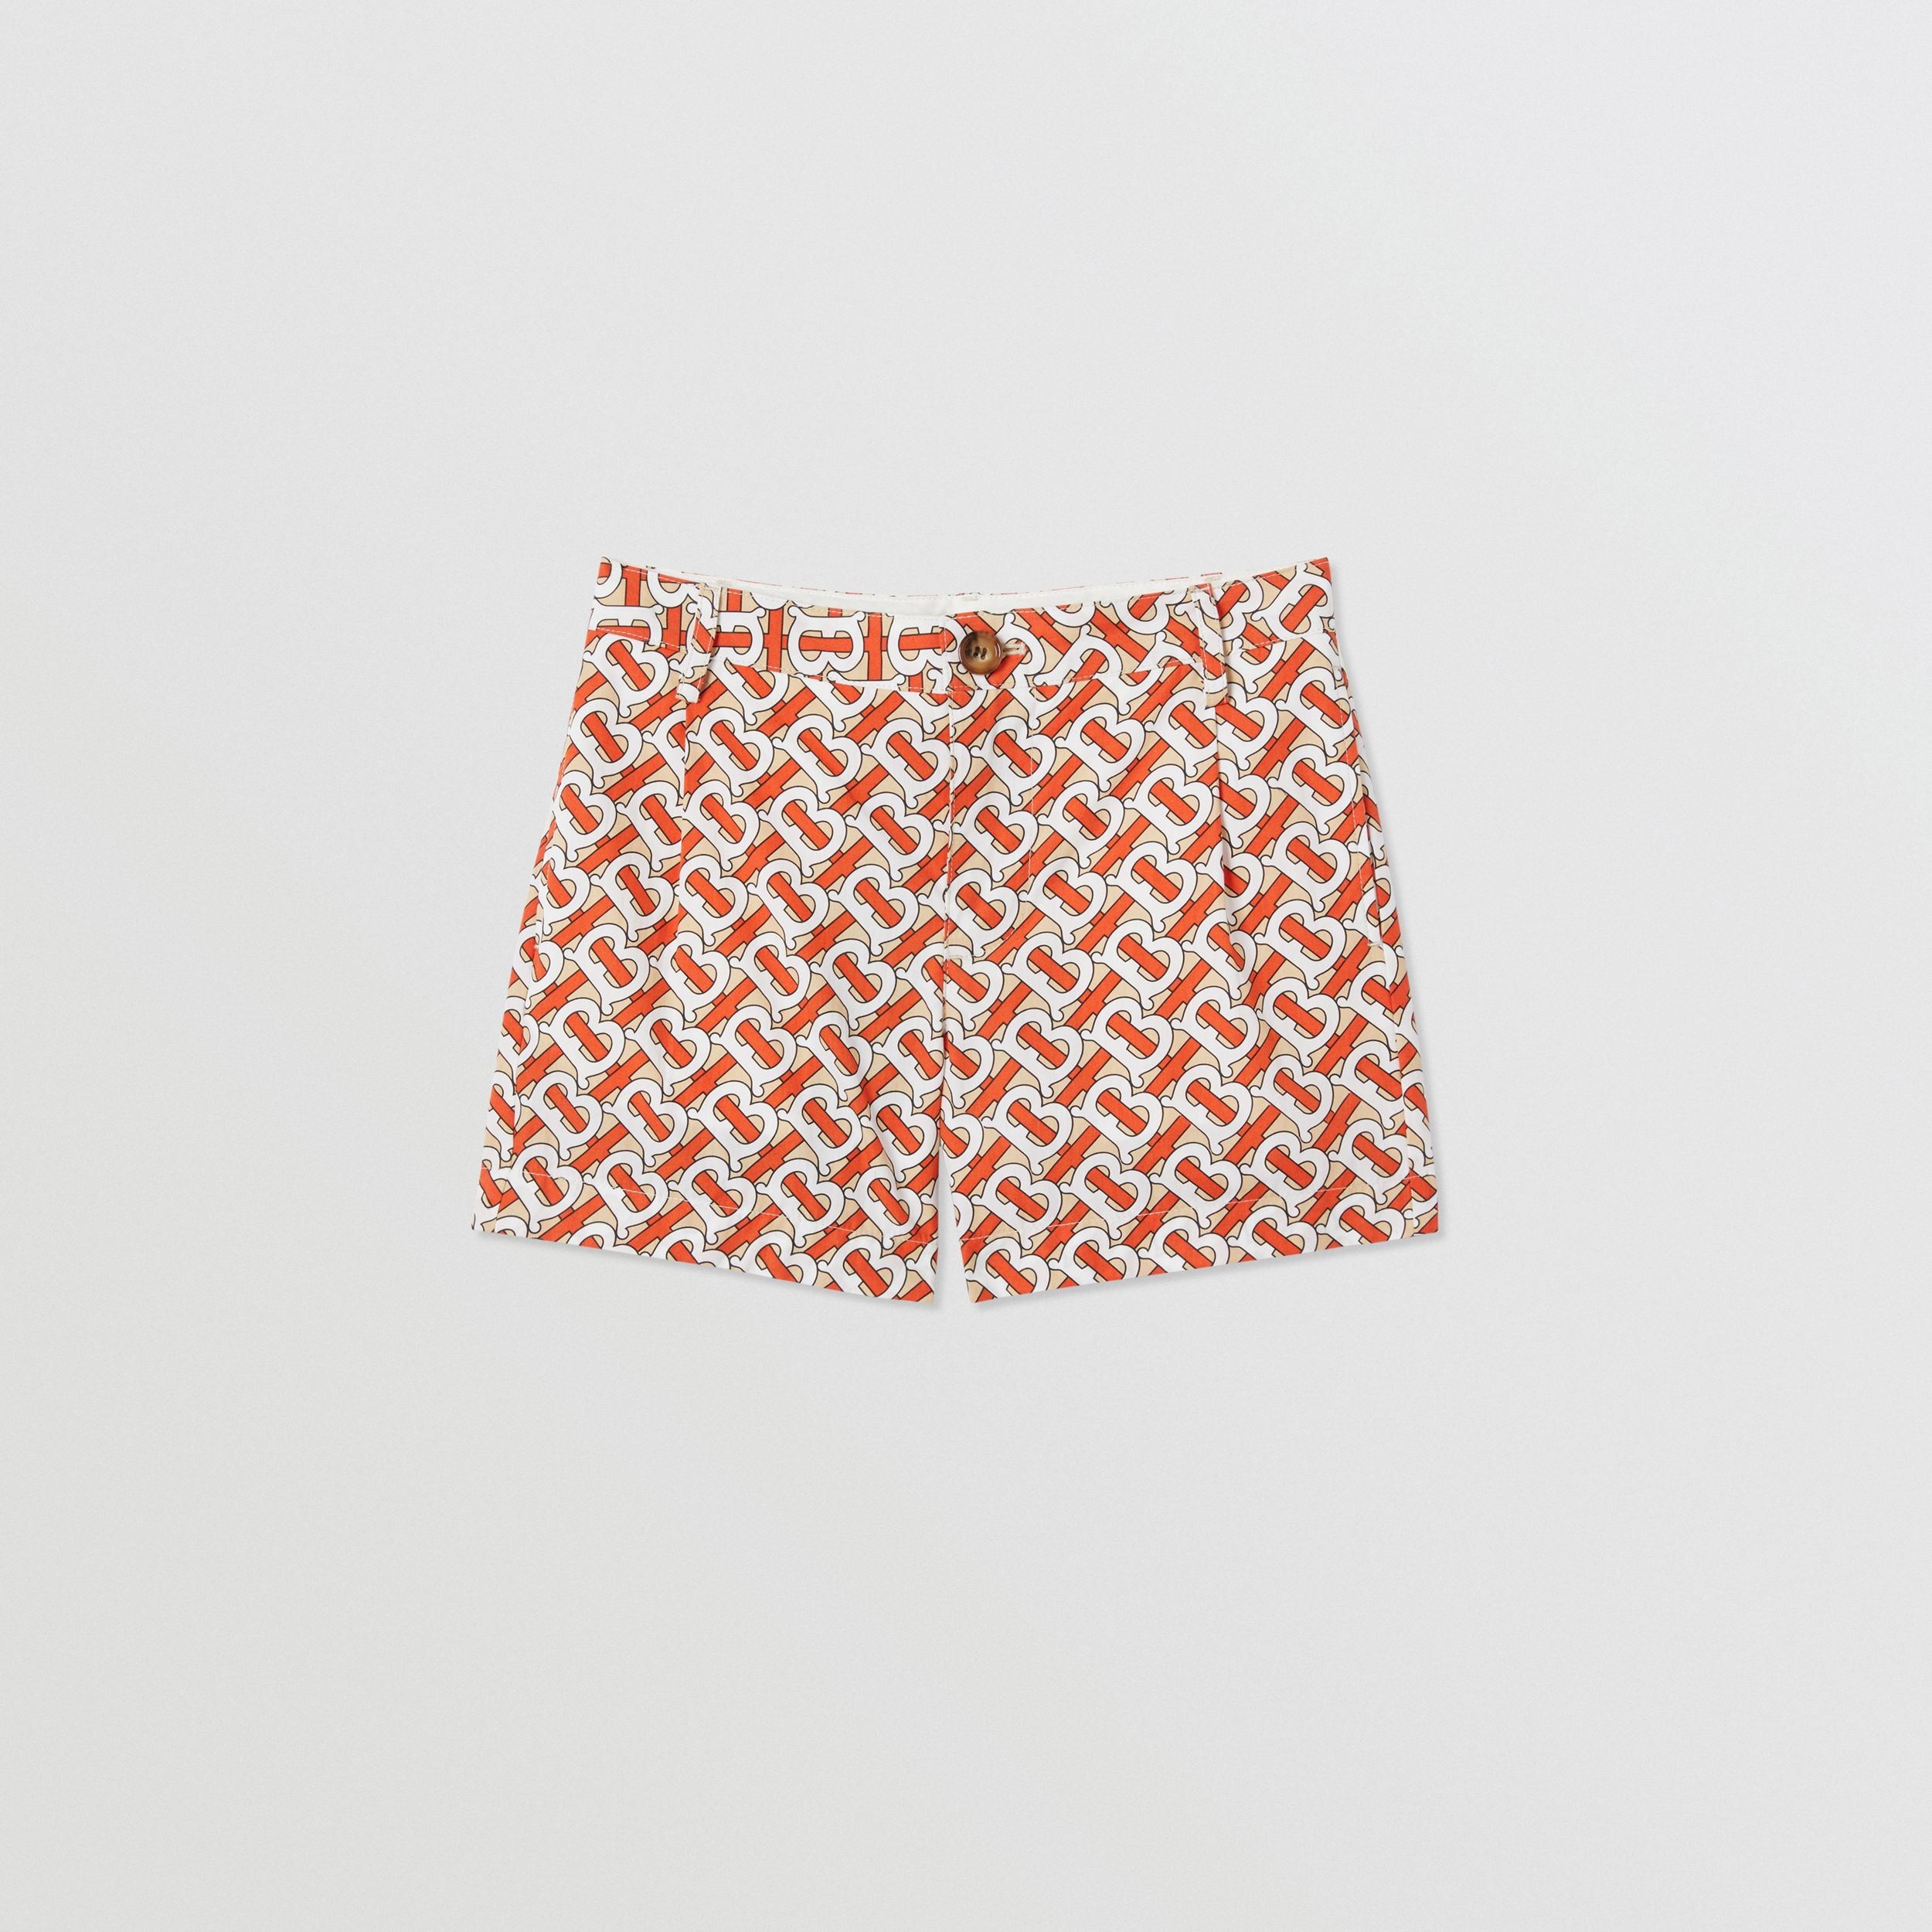 Monogram Print Cotton Poplin Shorts in Vermilion Red | Burberry United Kingdom - 1